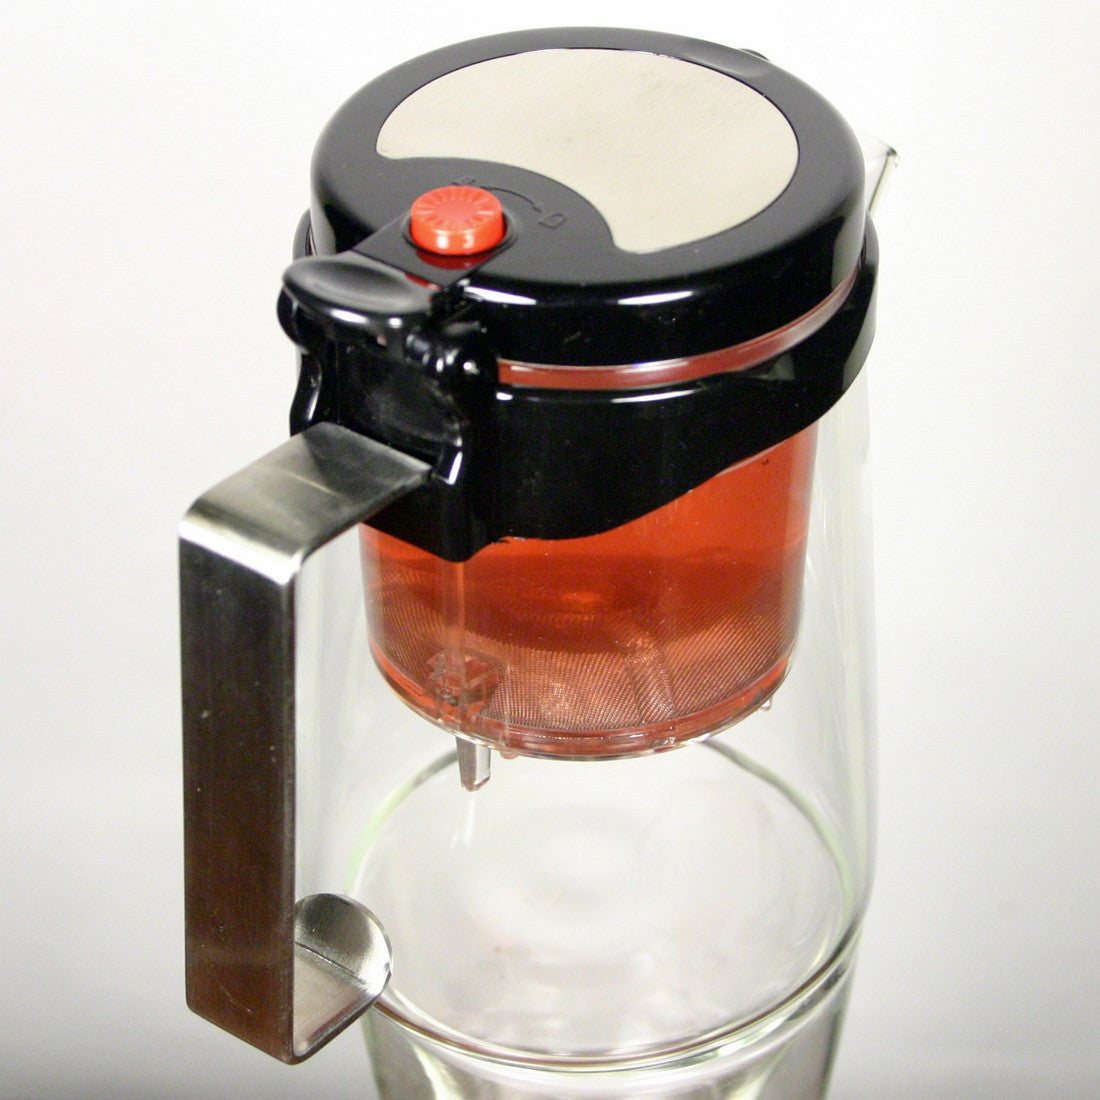 One Touch Tea Maker-Precise 1